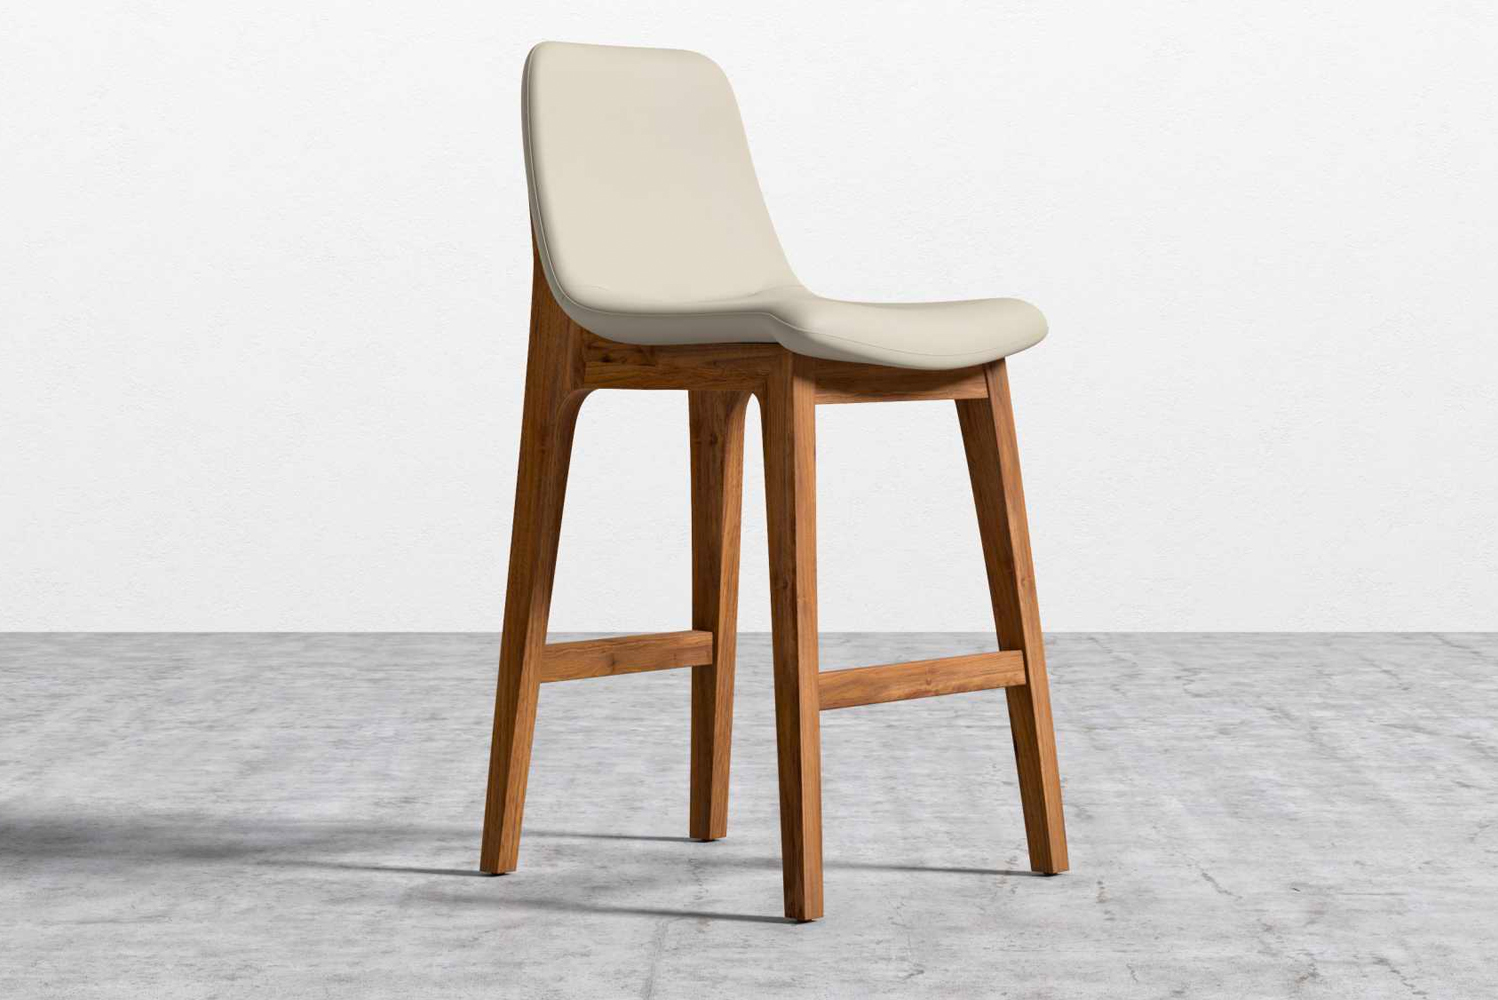 Made with vegan leather and solid ash wood in a walnut finish, the Aubrey counter stool is eco-friendly.